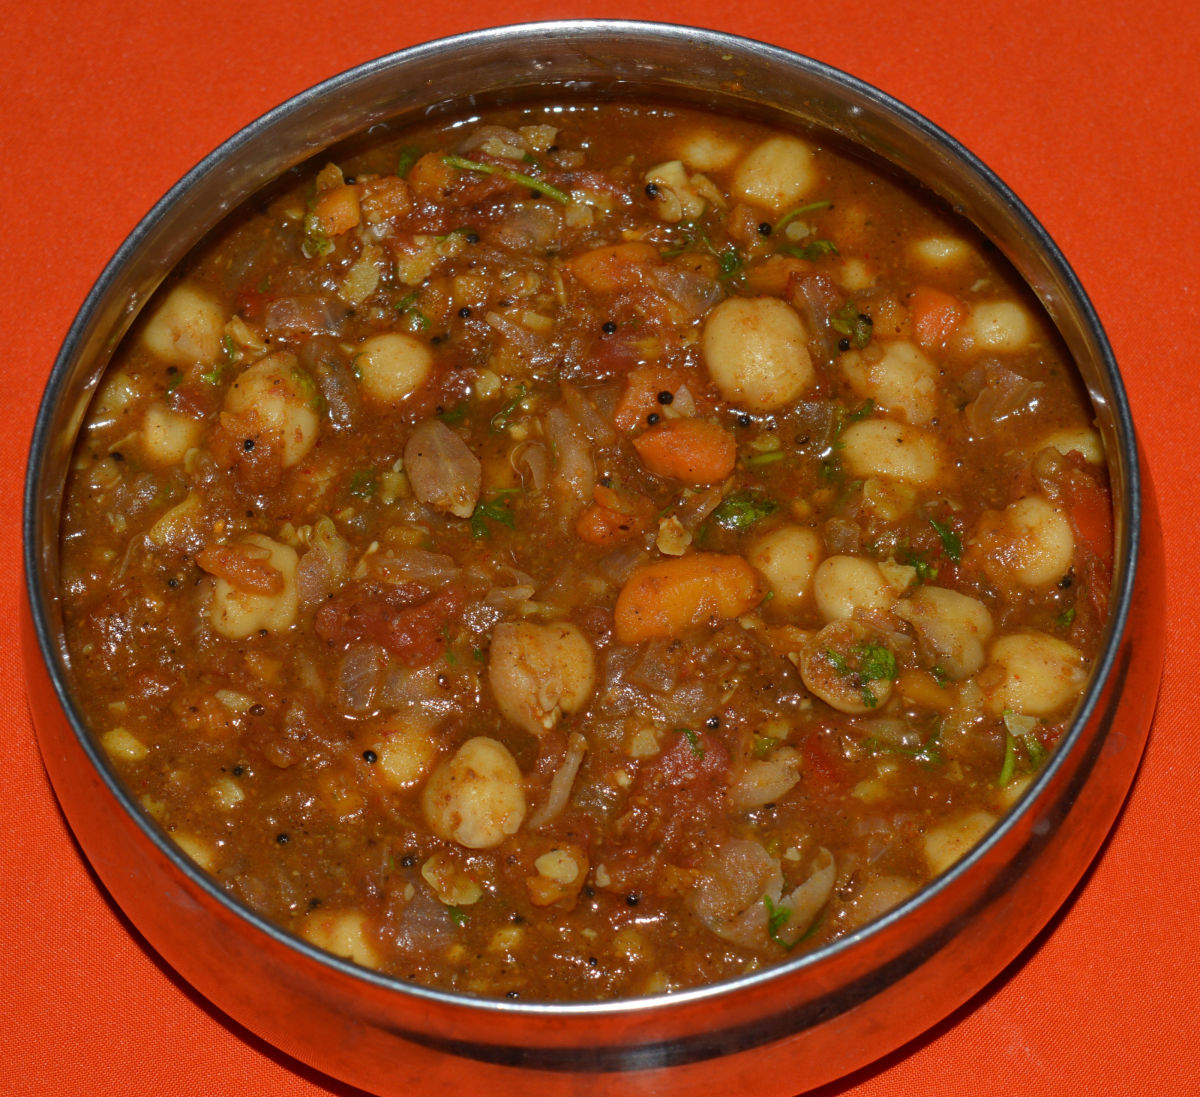 Vegan Curries: Chickpea (Garbanzo Beans) Curry Recipe